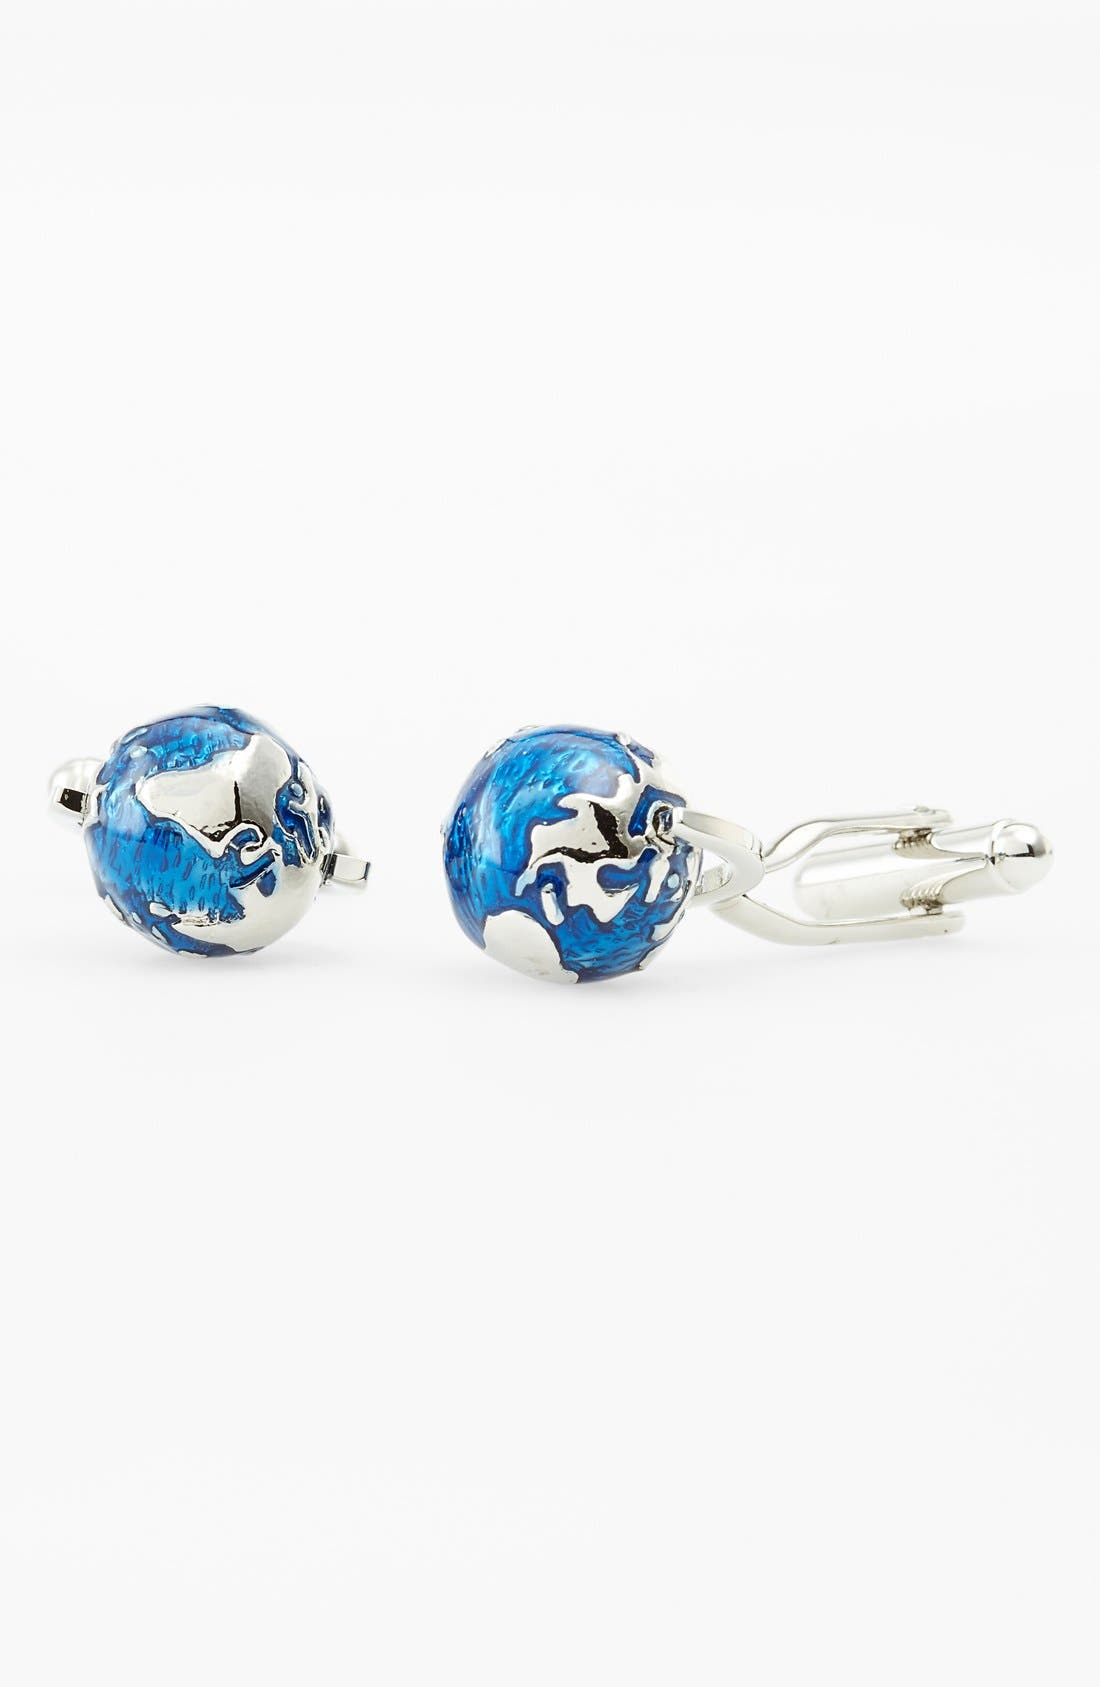 'Spinning Globe' Cuff Links,                             Main thumbnail 1, color,                             040